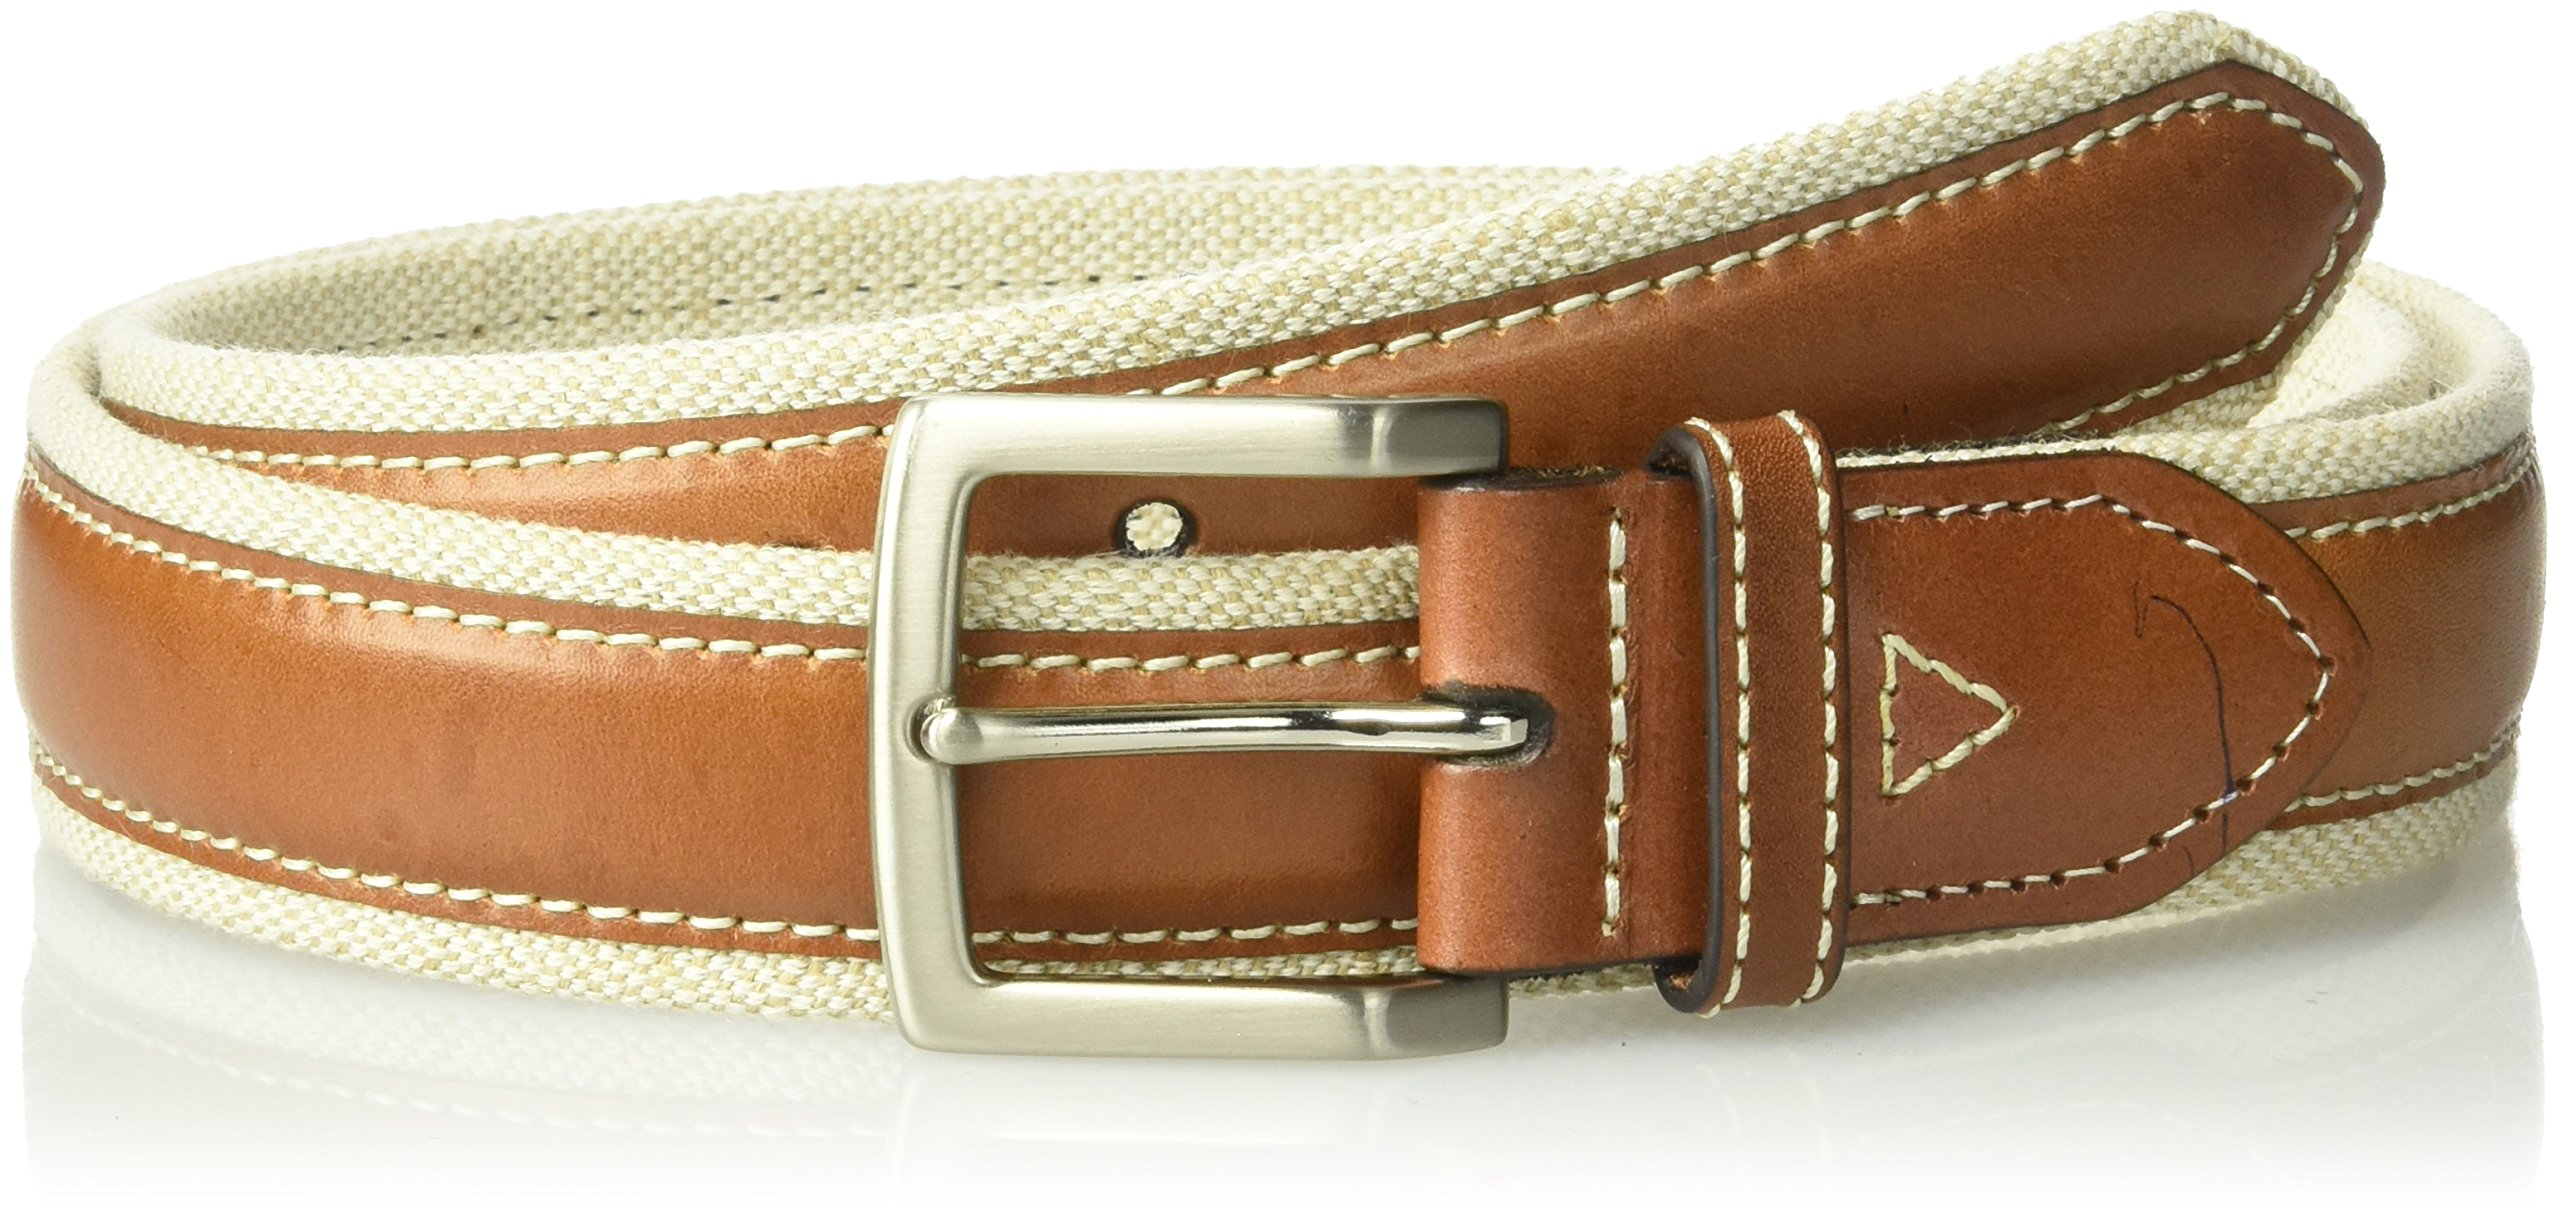 Tommy Bahama Men's 1.5 in. Canvas Belt With Genuine Leather Overlay, natural, 32